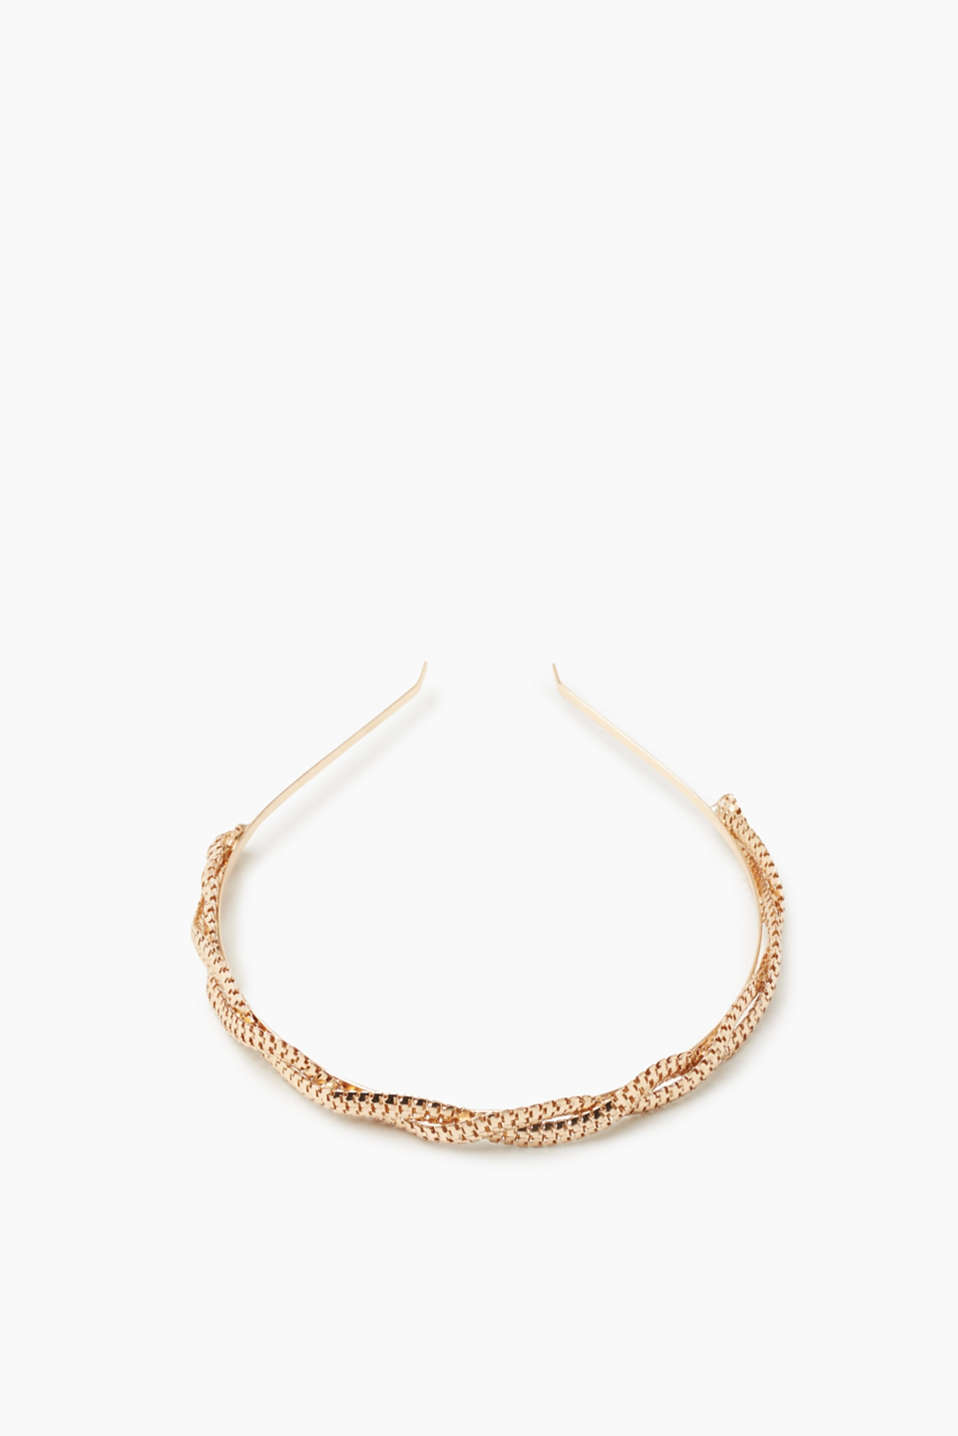 In a mood for glamour! This flexible hairband with a braided link chain will go perfectly with your look of the day.